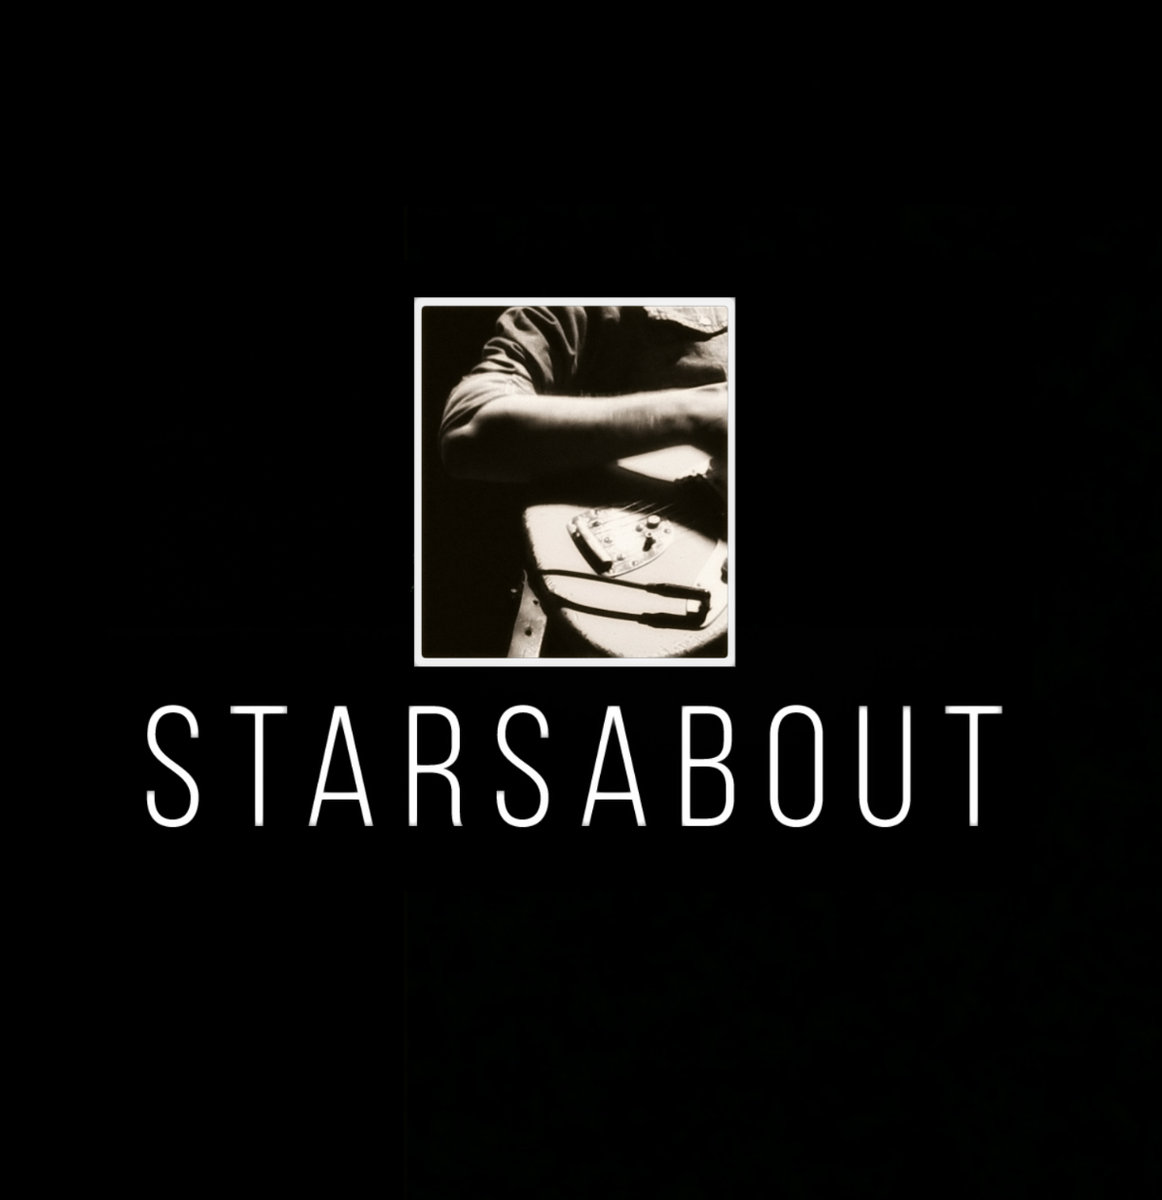 Starsabout